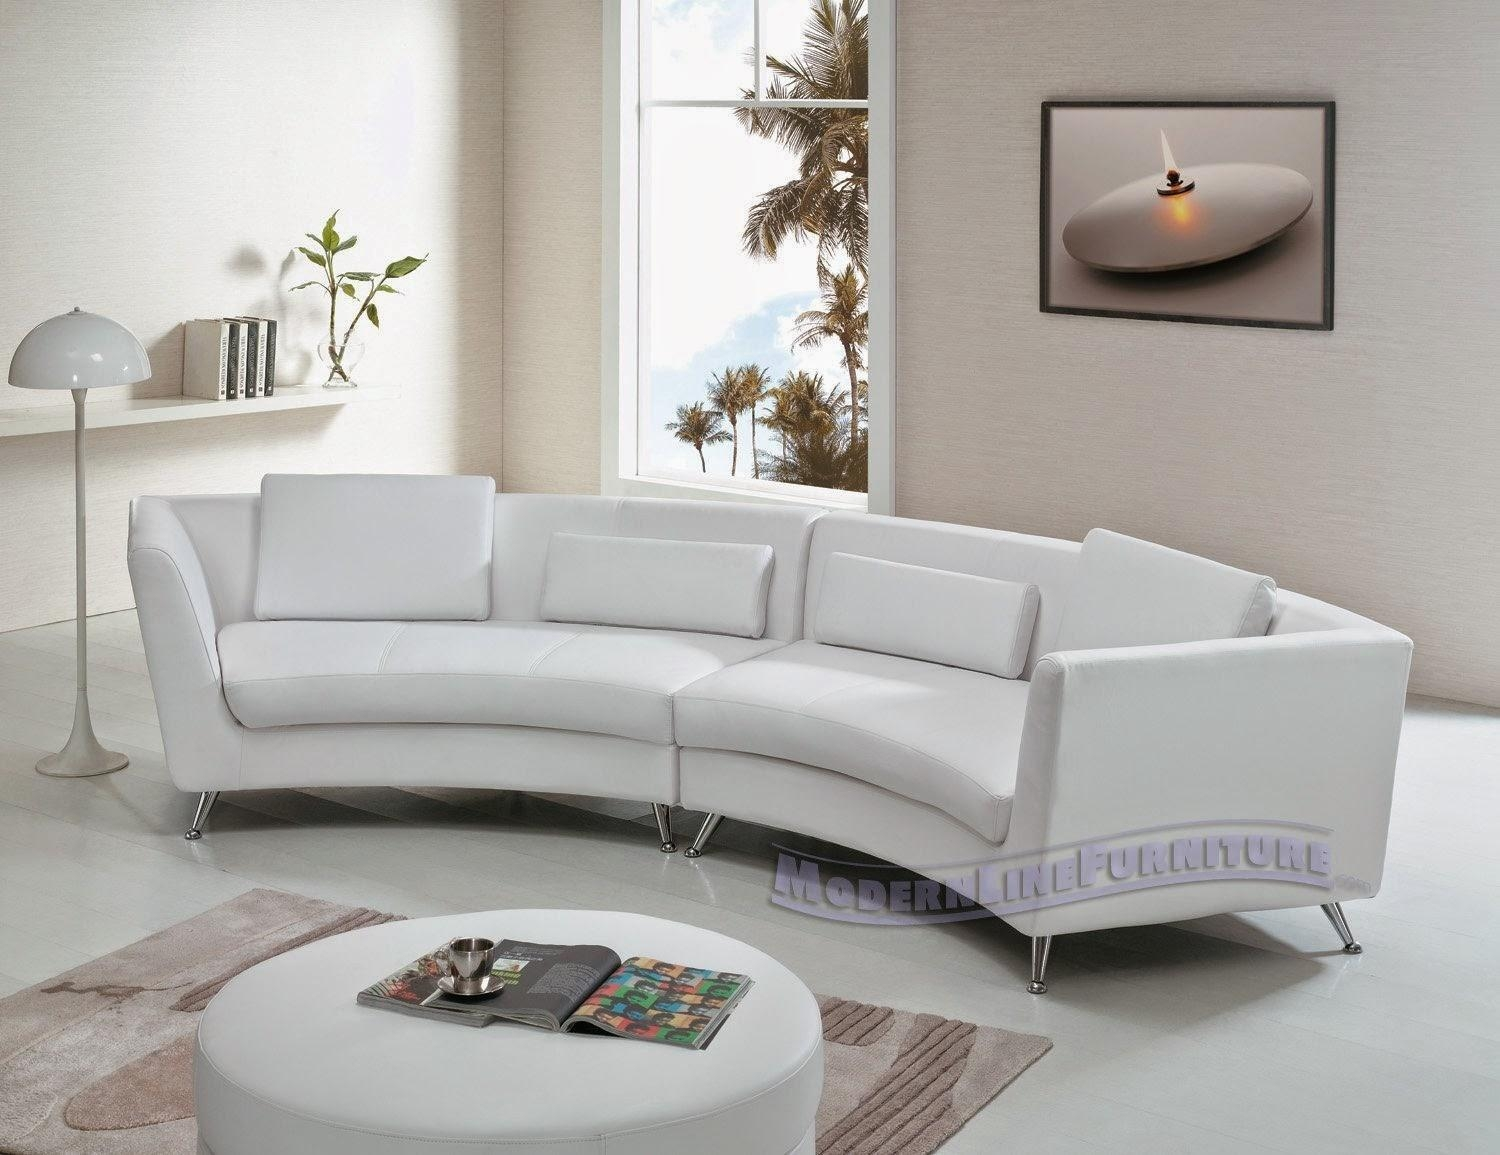 Sofa Curved: Curved Sofa For Bay Window Pertaining To Bay Window Sofas (View 8 of 20)